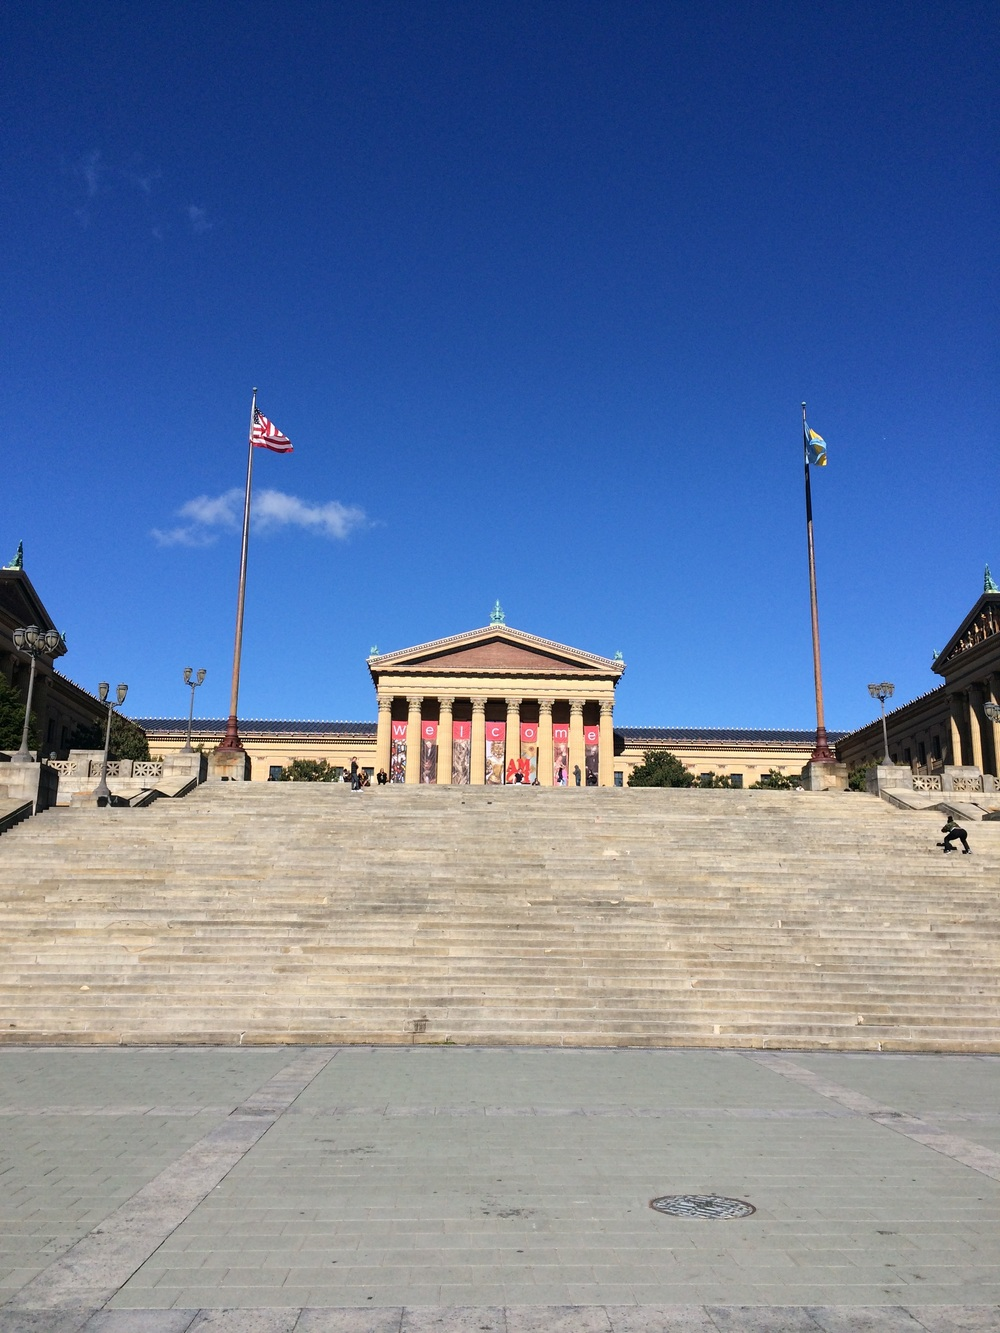 My weekend view of the Philadelphia Art Museum.